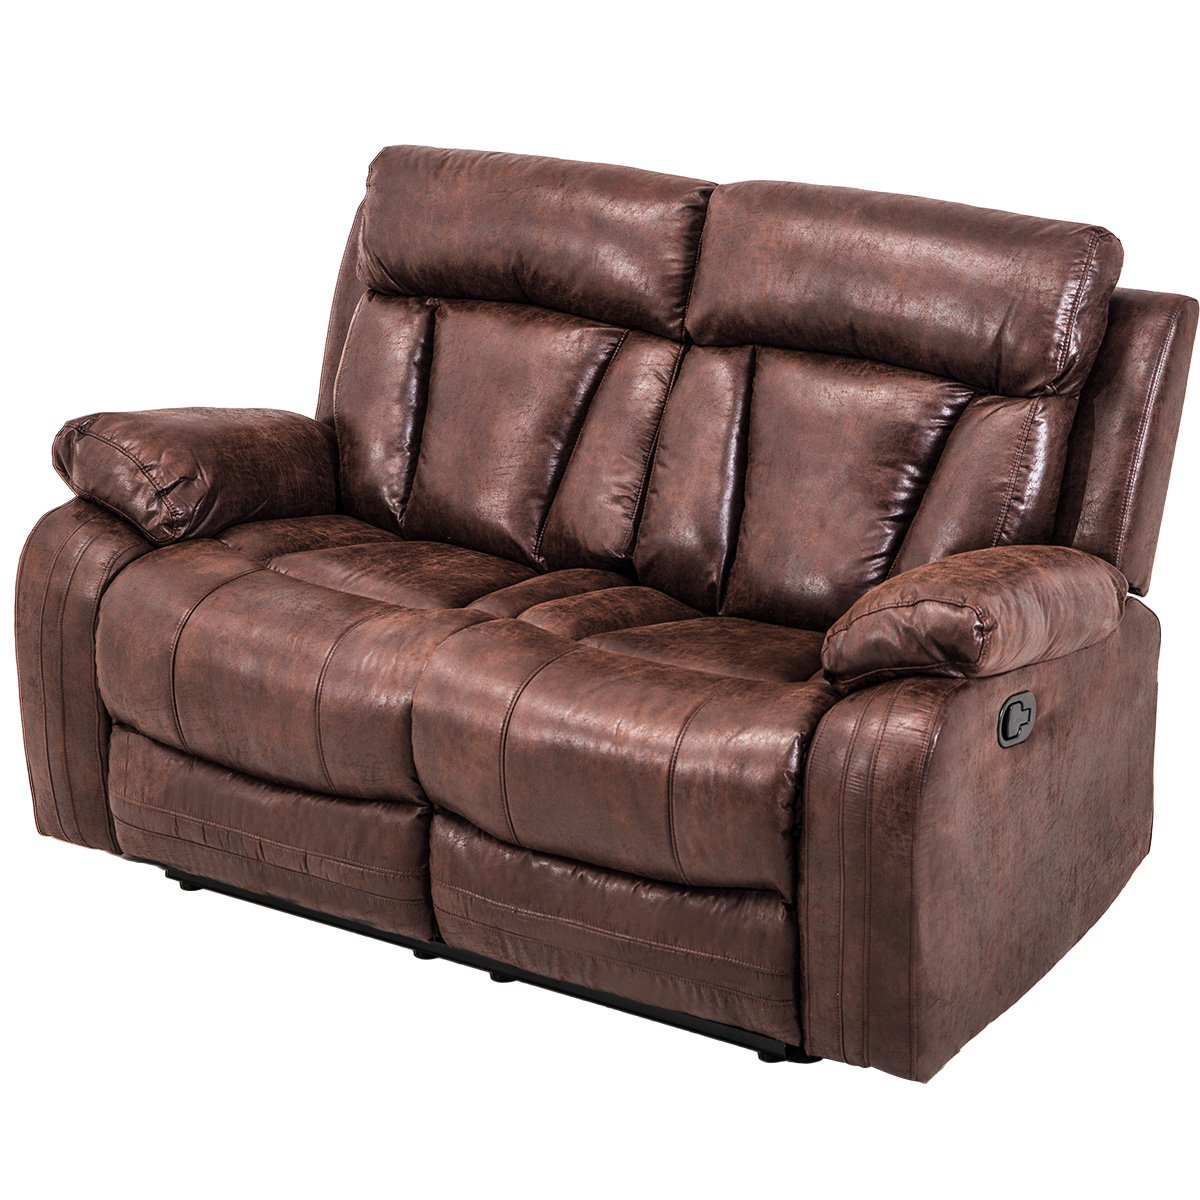 Pleasing Hooseng Sectional Loveseat Chaise Couch Sofa Leather Accent Chair Set Manual Recliner Motion For Living Brown Cjindustries Chair Design For Home Cjindustriesco